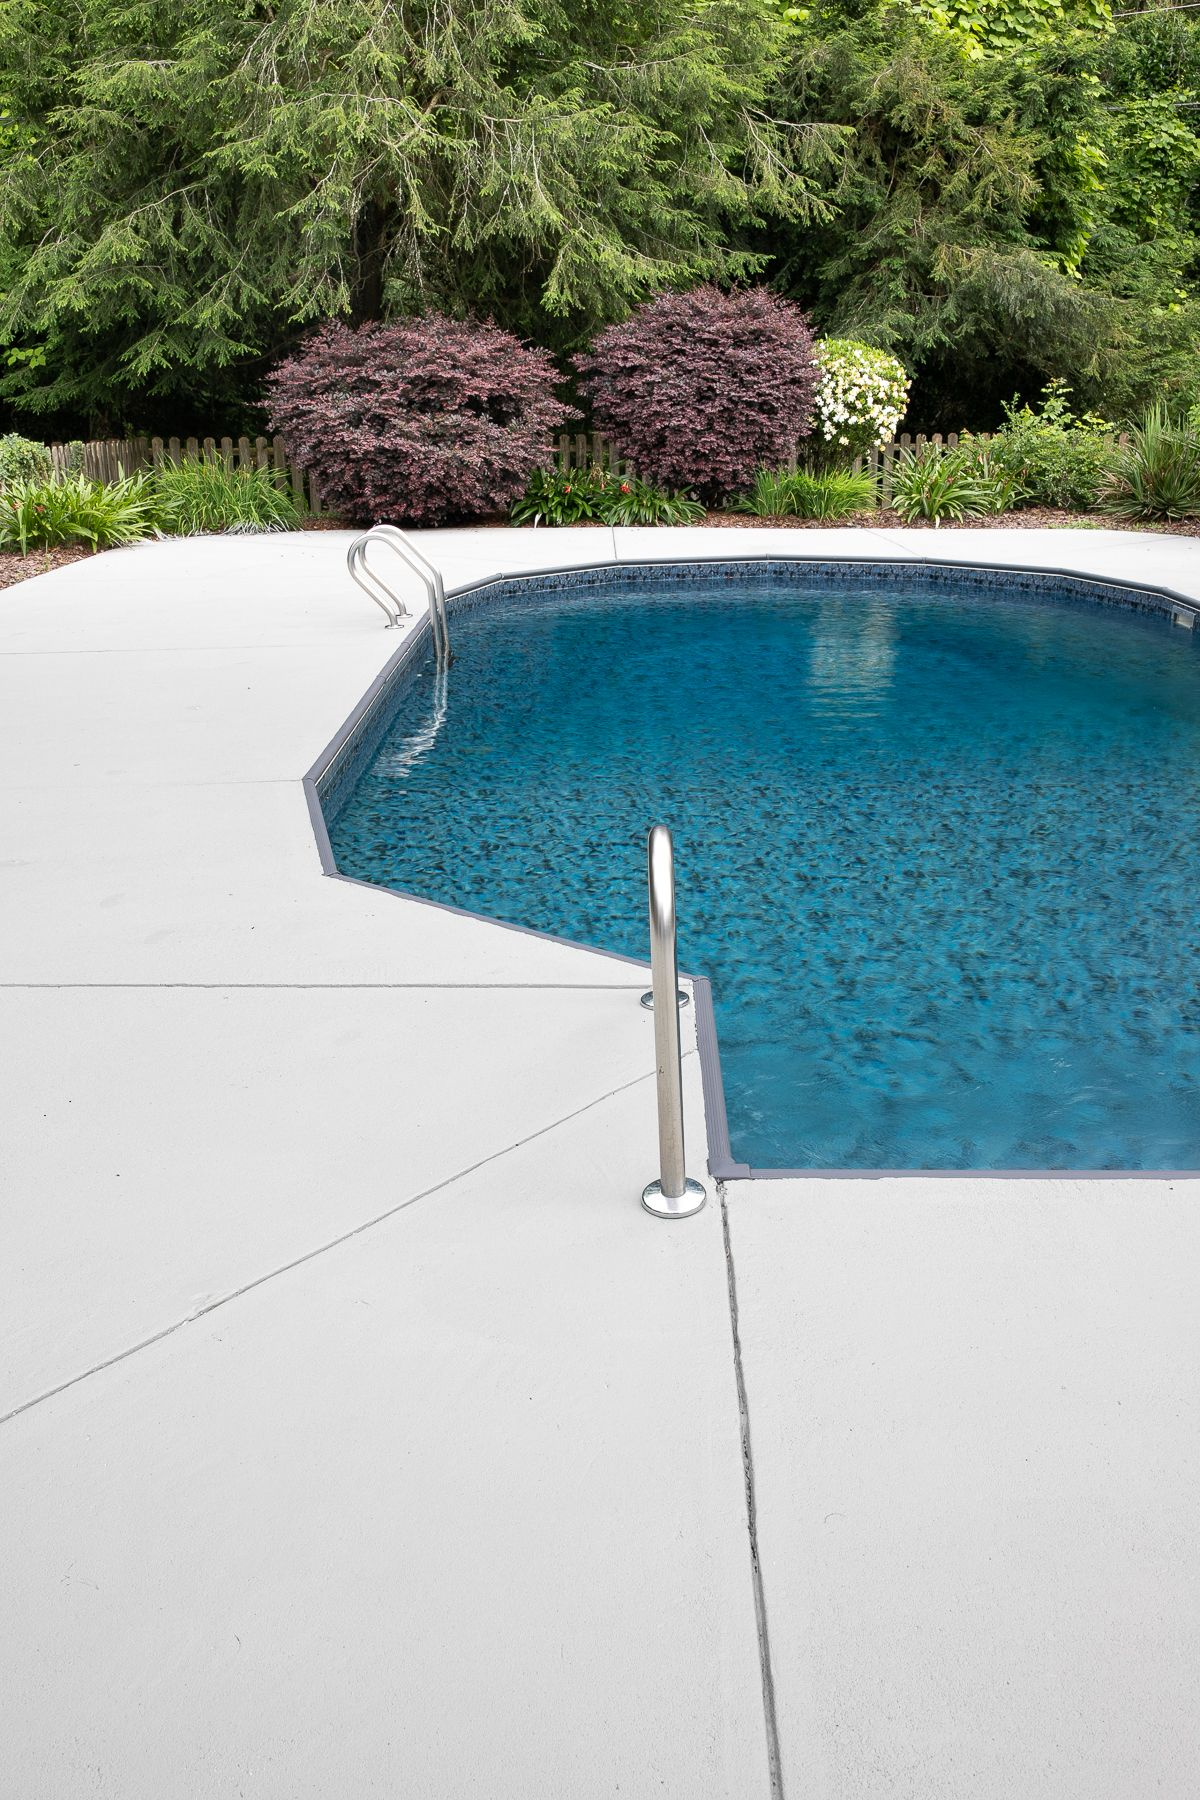 Diy Painted Concrete Pool Deck And Patio Concrete Pool Painting Concrete Painted Pool Deck